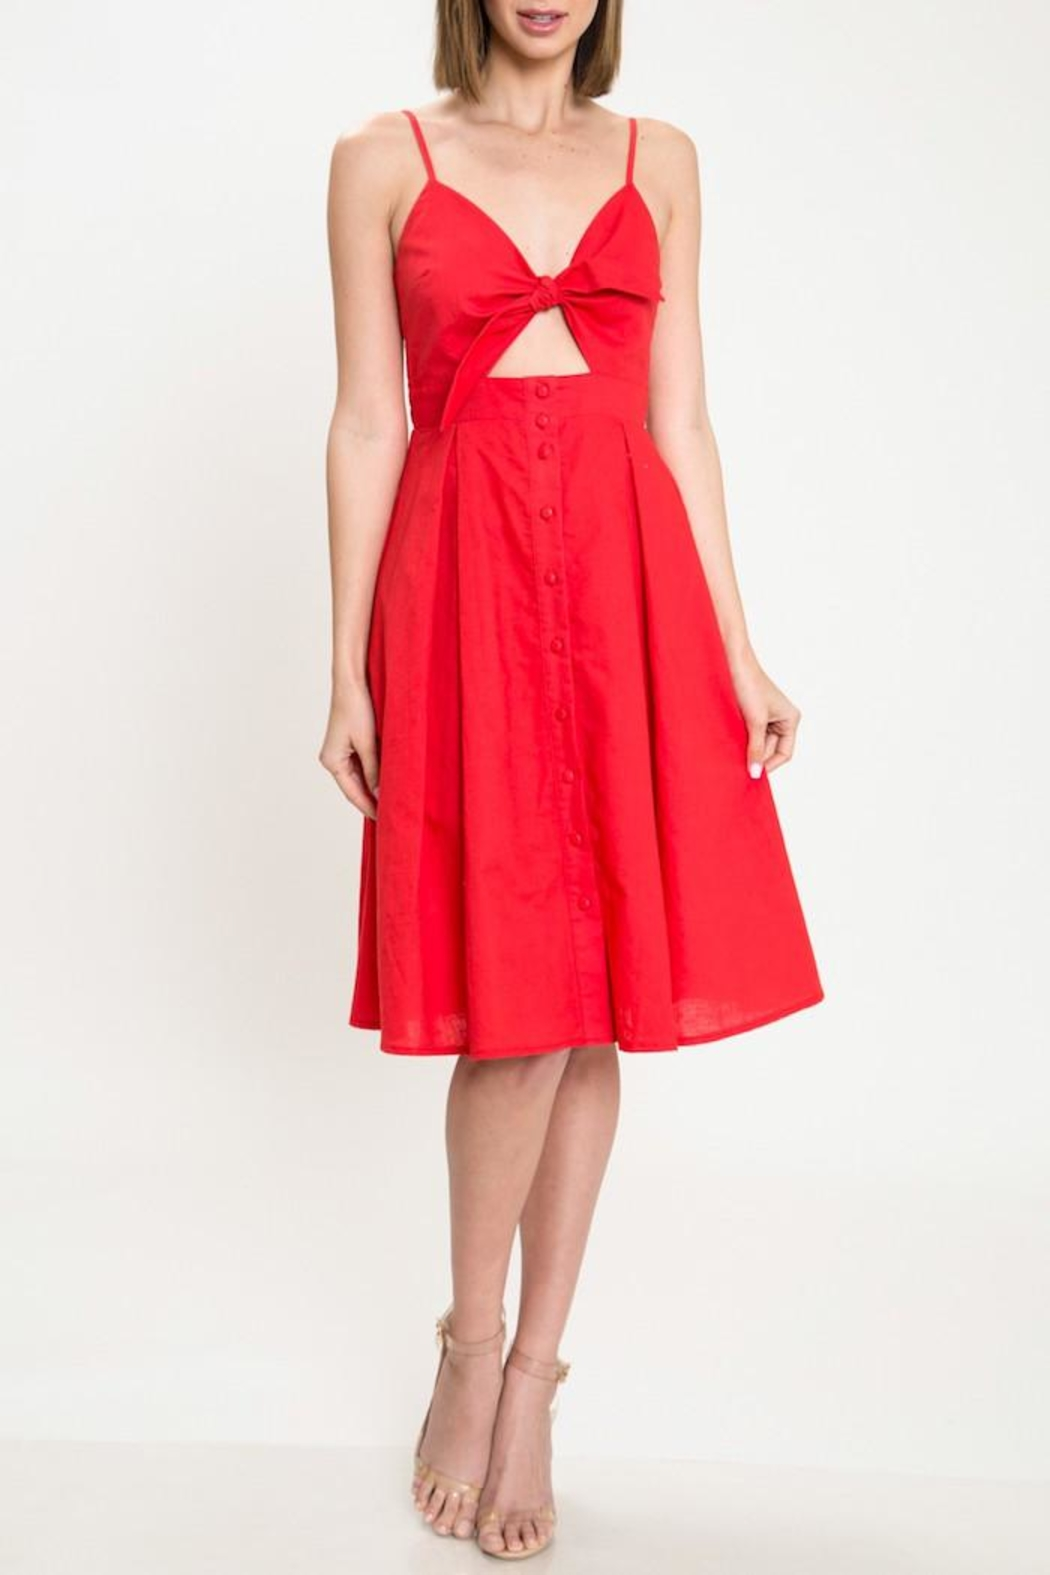 Latiste Red Tie-Front Dress - Main Image